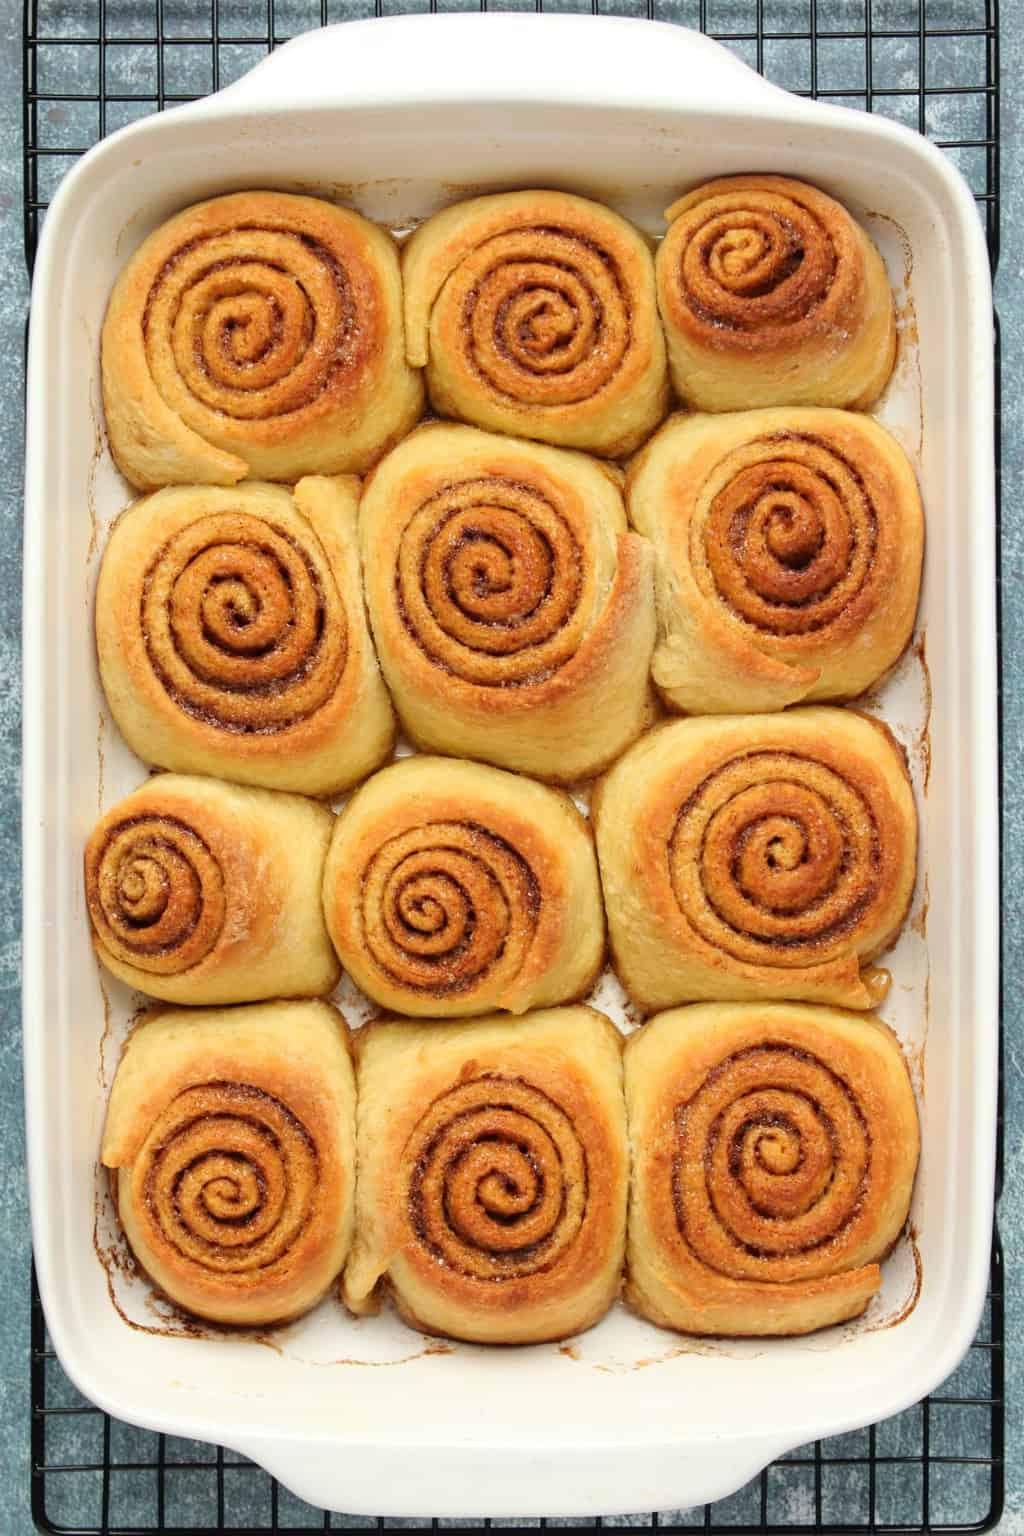 Vegan cinnamon rolls fresh from the oven in a white baking dish.